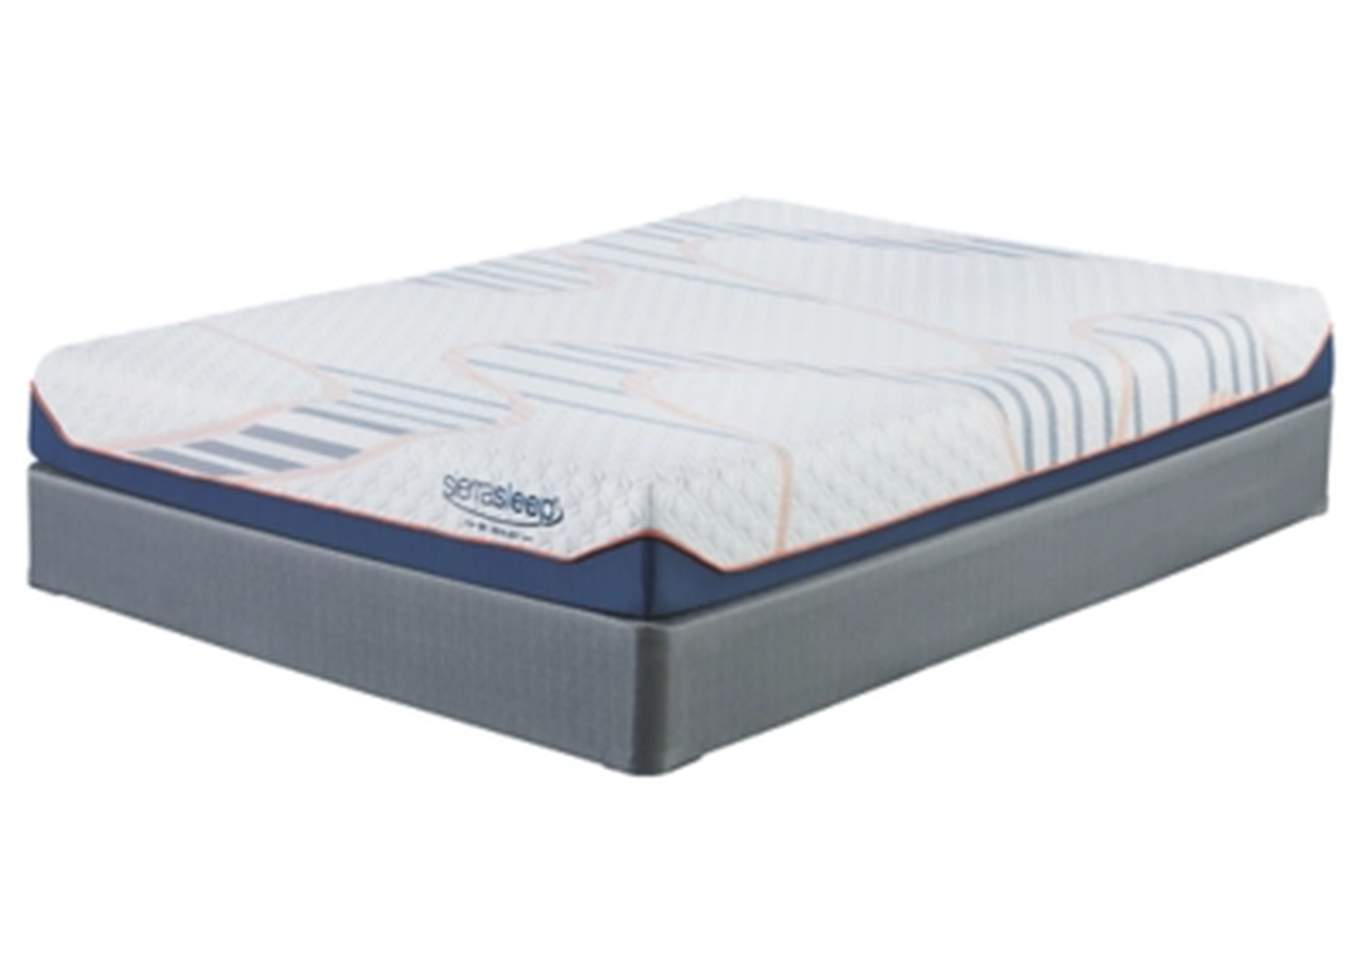 8 Inch MyGel Twin Mattress,Sierra Sleep by Ashley